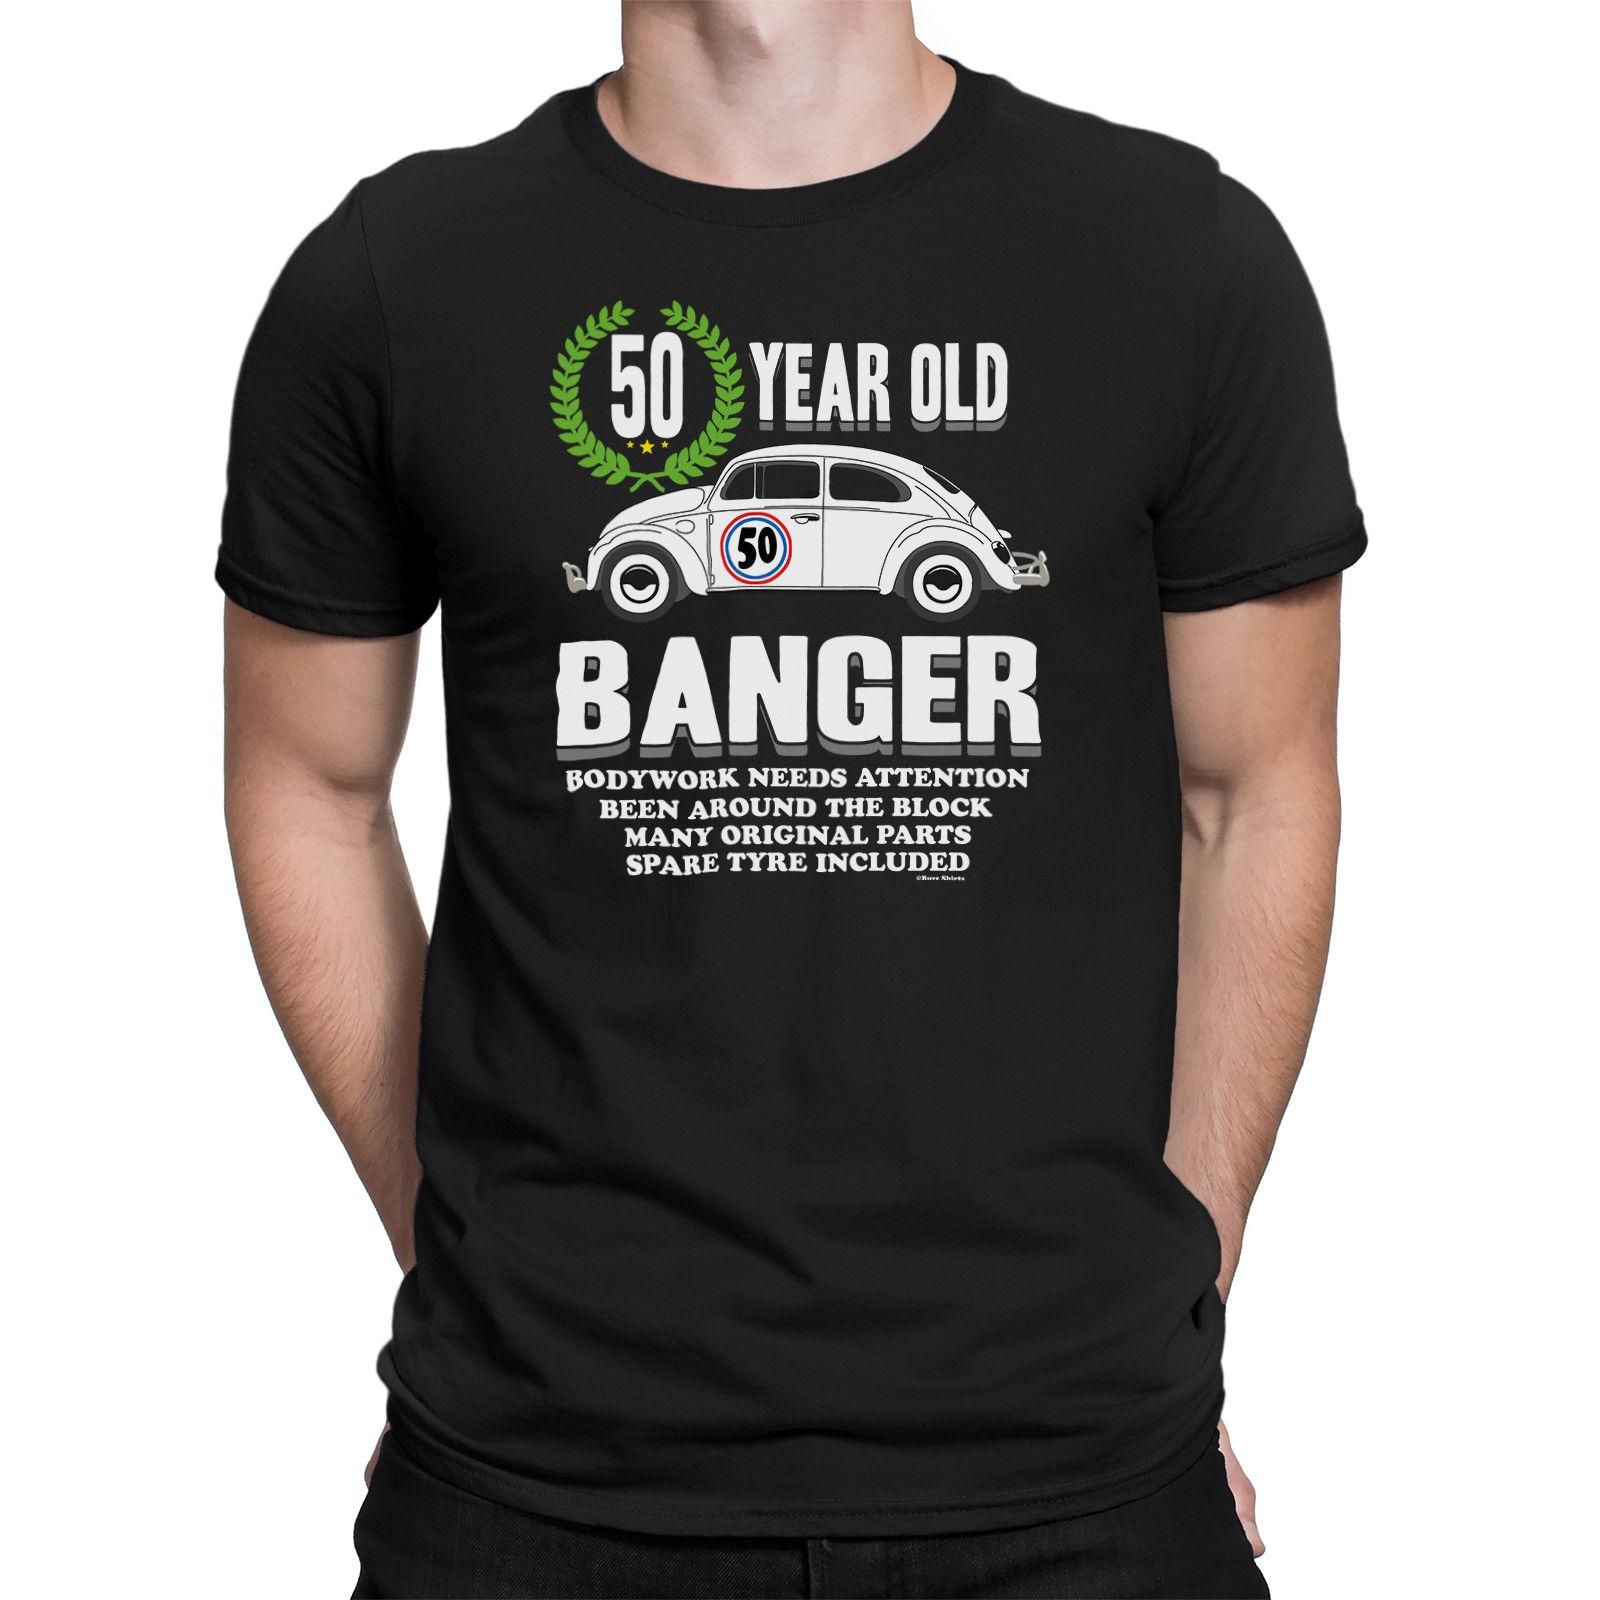 Details Zu Mens 50th BIRTHDAY TShirt OLD BANGER 50 Years Old Joke Gift Fifty T Shirt Designing Personalised From Lukehappy14 1296